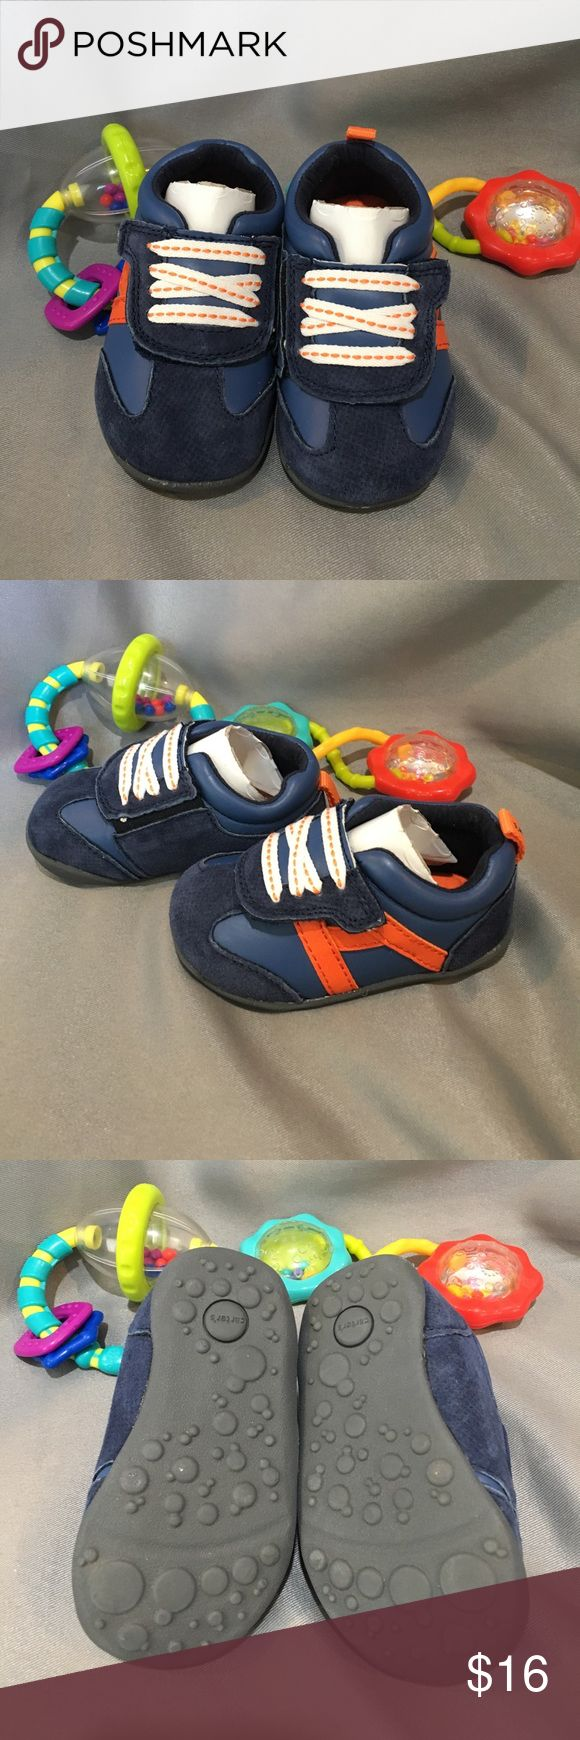 NWT/NIB Carter's Oldie-BW Baby Shoes NWT/NIB Carter's Oldie-BW Baby Shoes. Great for a crawler, stander or walker!  Leather Upper, Velcro to open. Orange and Blue. Carter's Shoes Baby & Walker